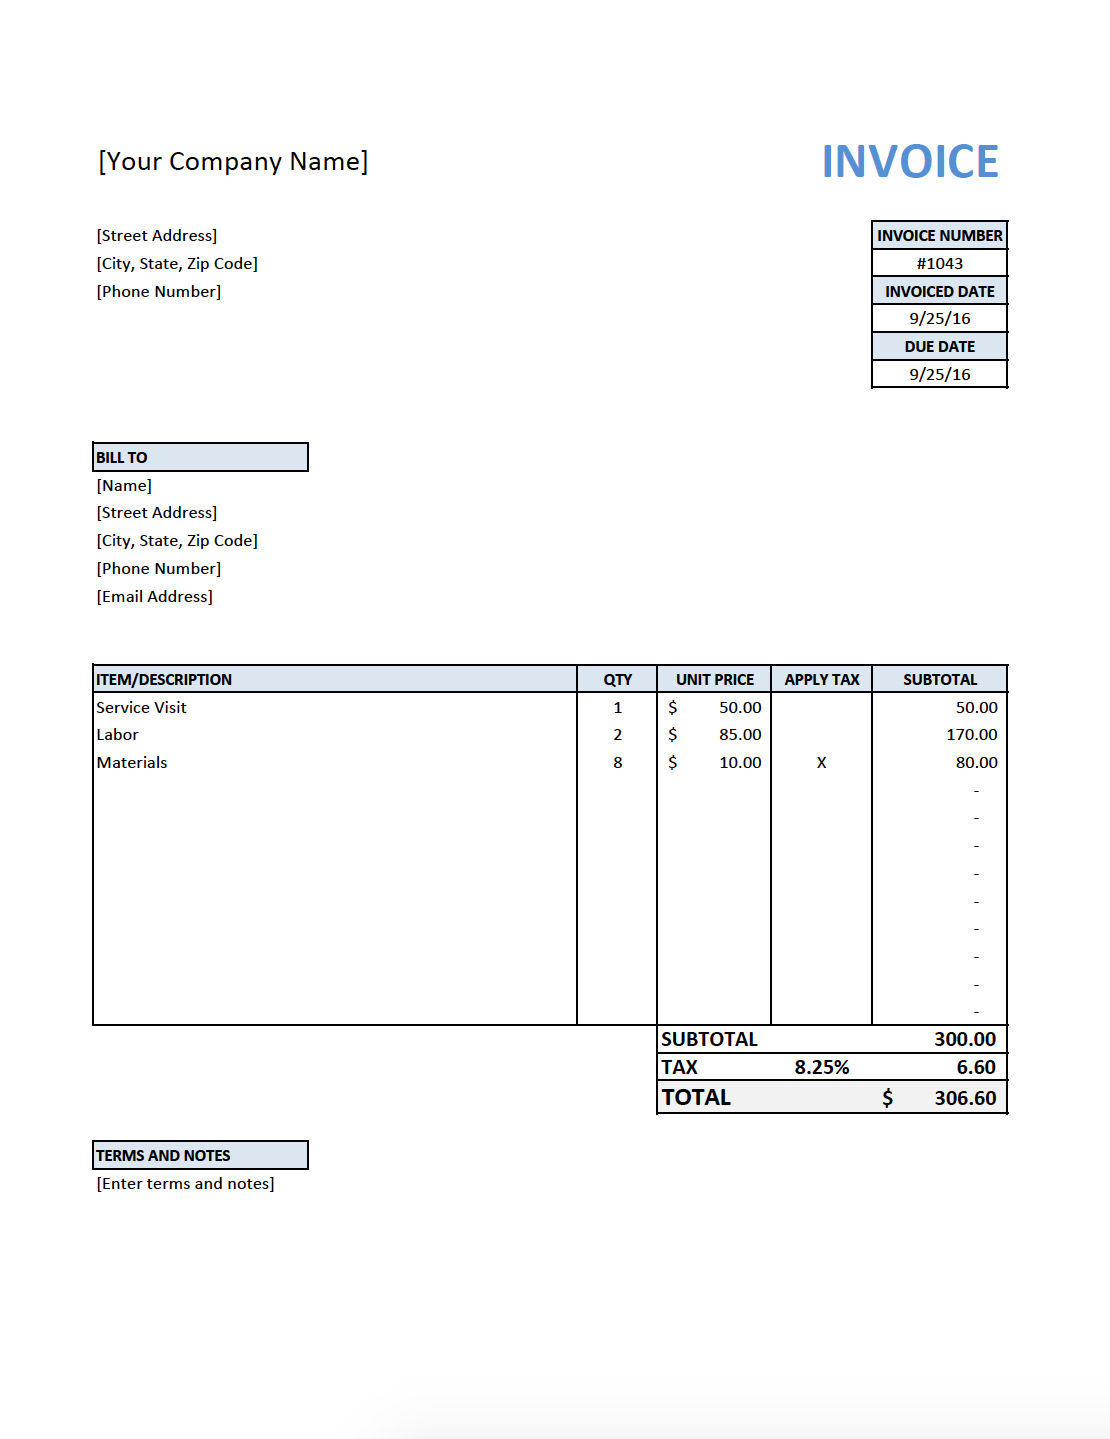 Sample Flat Gardening Care A4 Invoice1